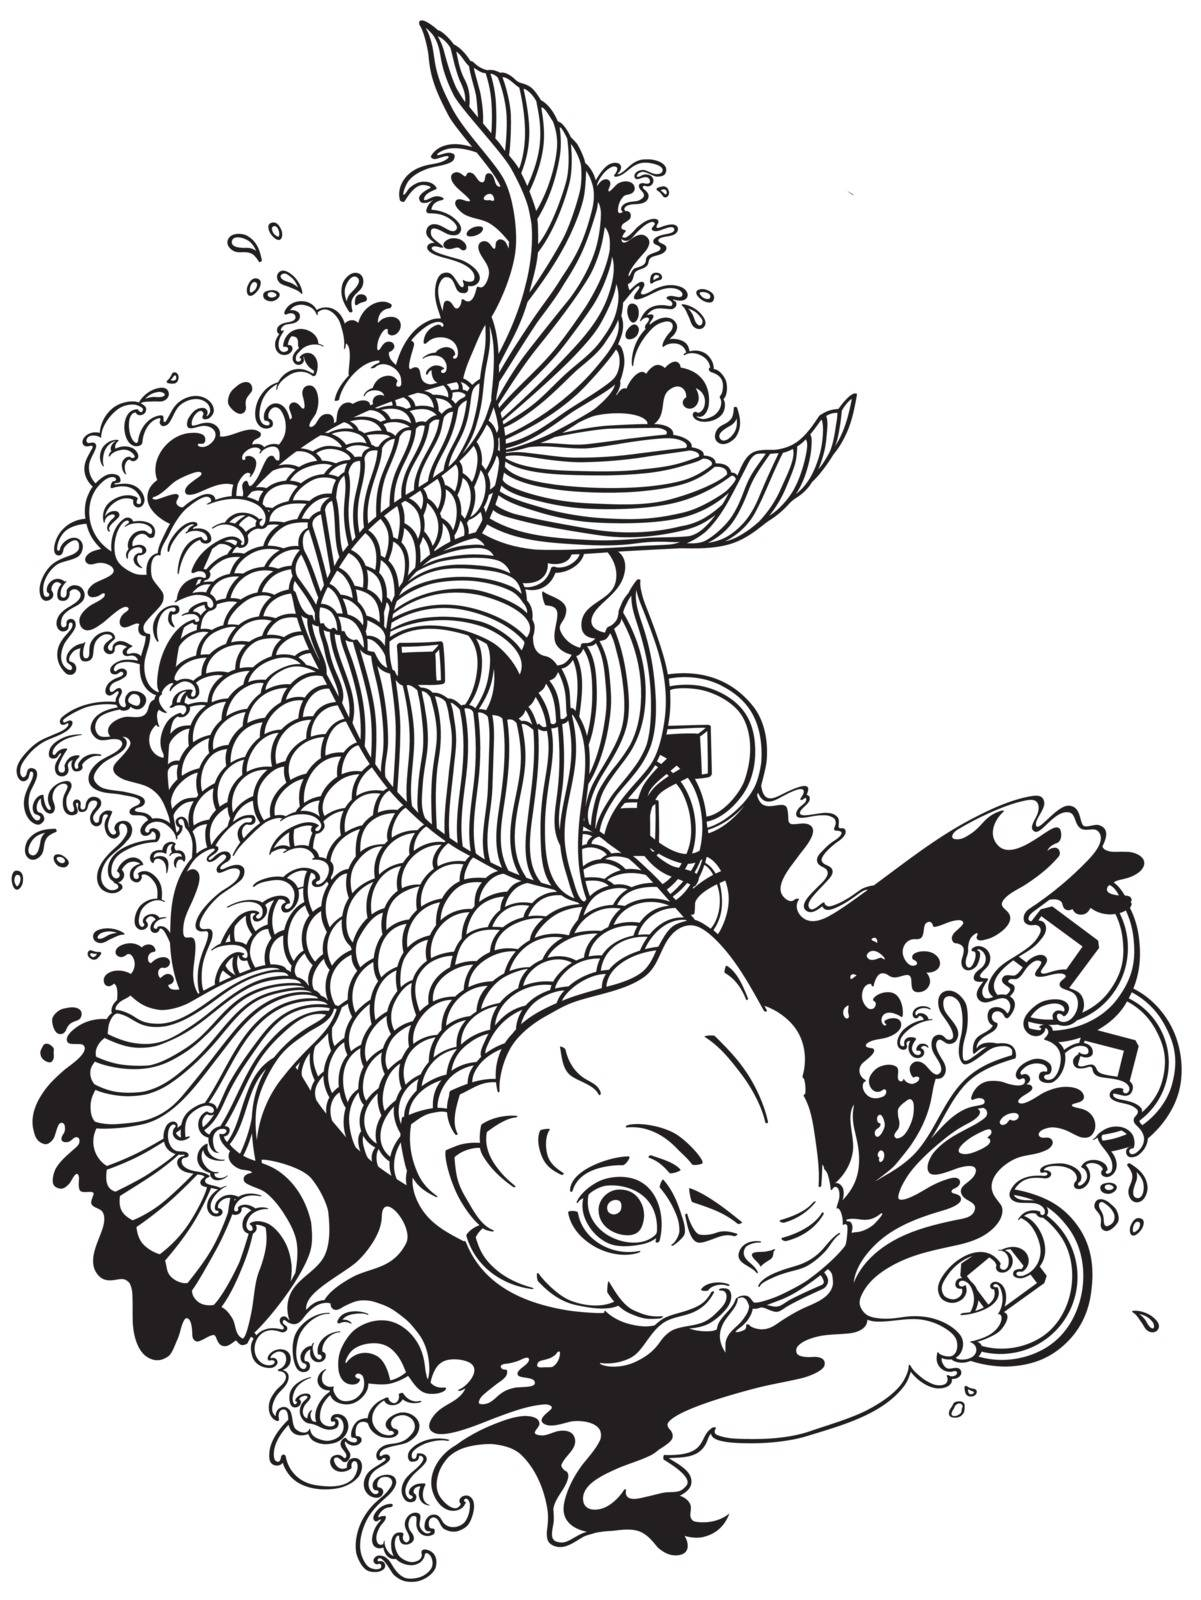 japanese carp koi gold fish swimming in a pond with feng shui money coins . Tattoo style black and white vector illustration